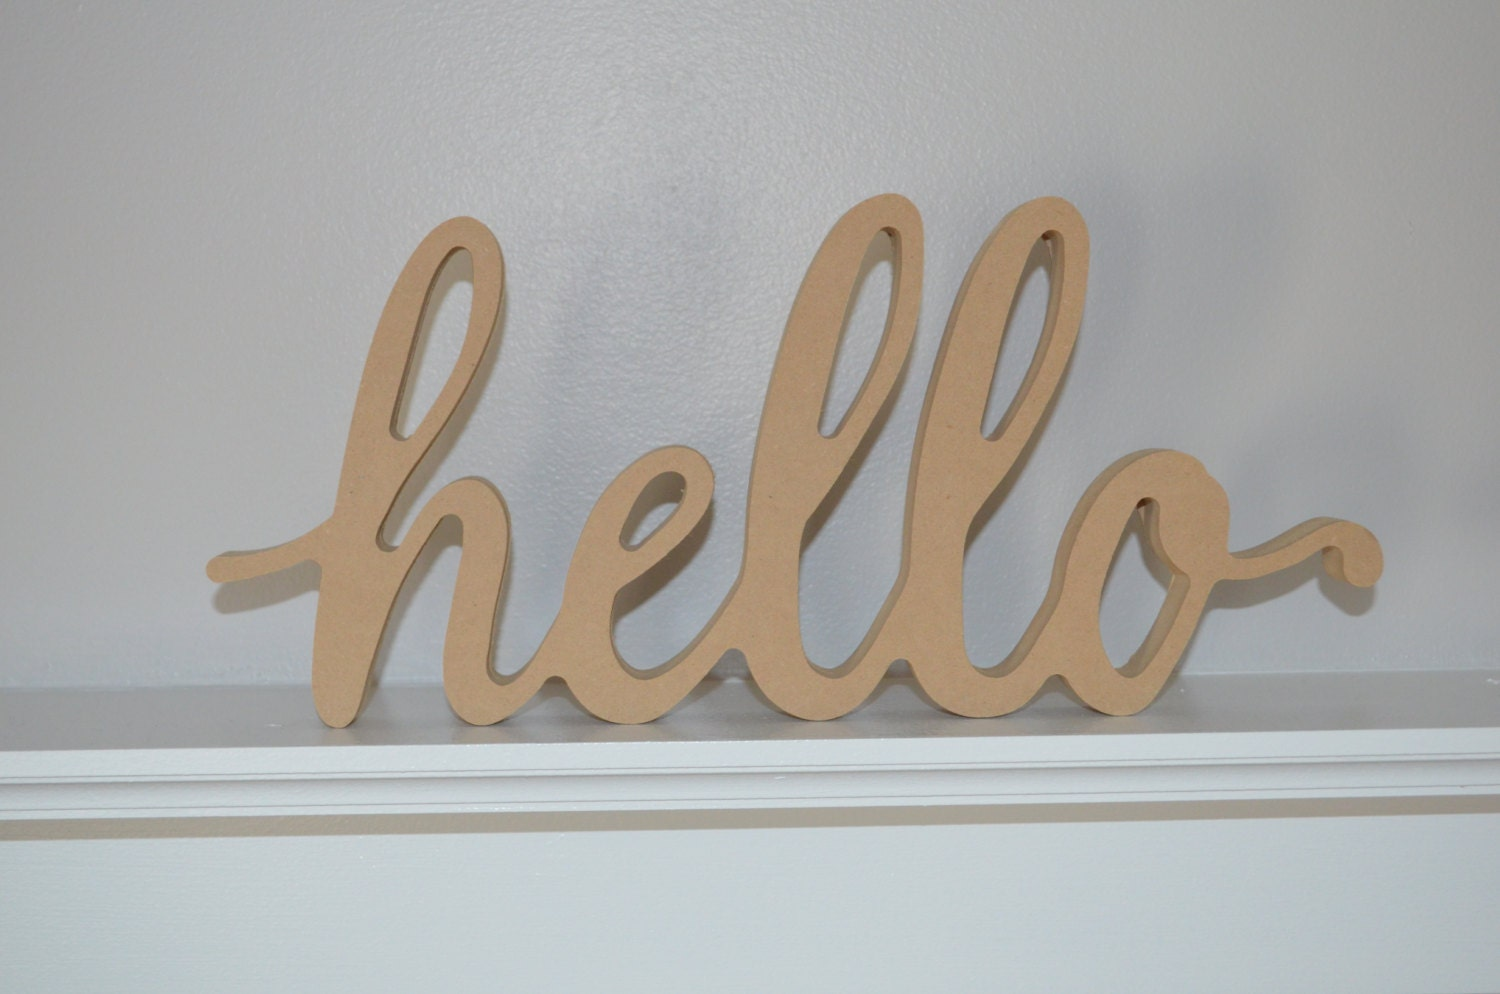 unfinished hello cursive lettershandmade wooden letters signhello sign decoration